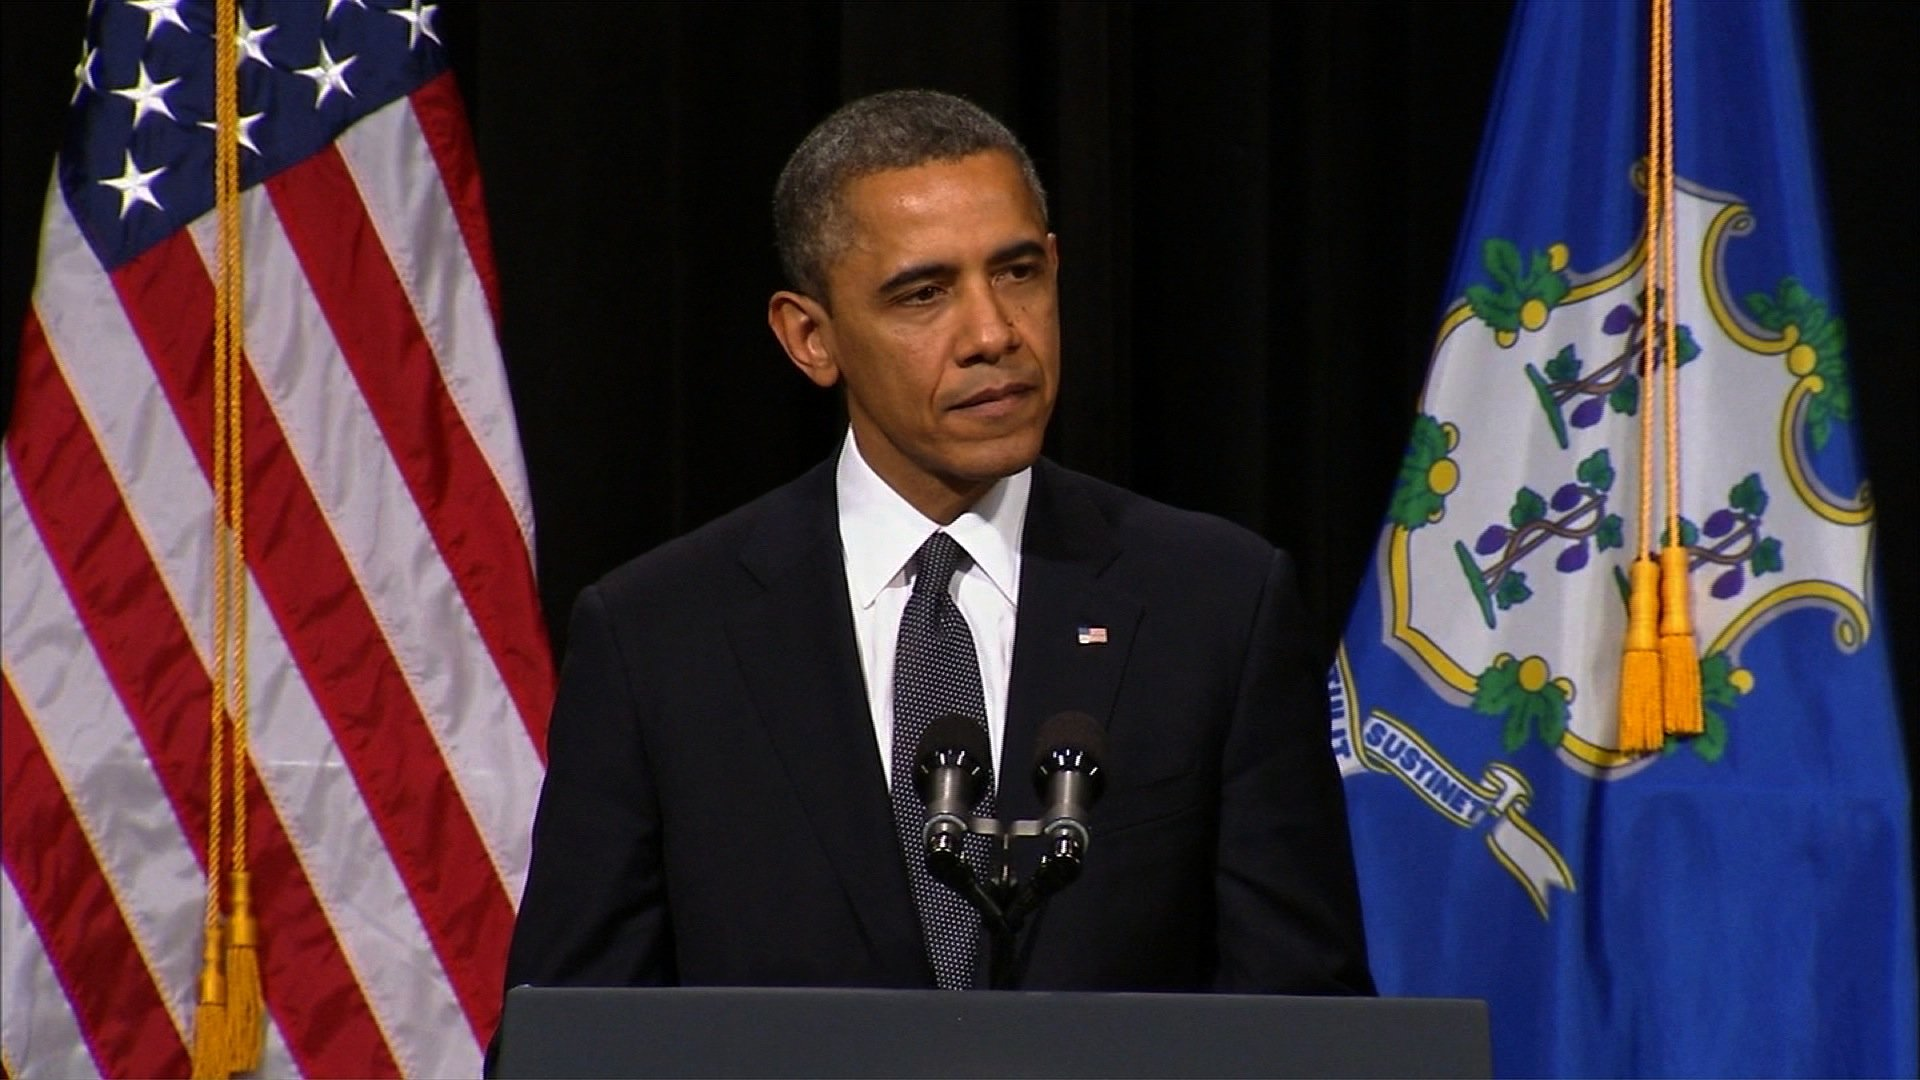 President Obama spoke at an interfaith prayer service in Newtown, CT, following a mass shooting that killed 20 first-graders. (Credit: CNN)